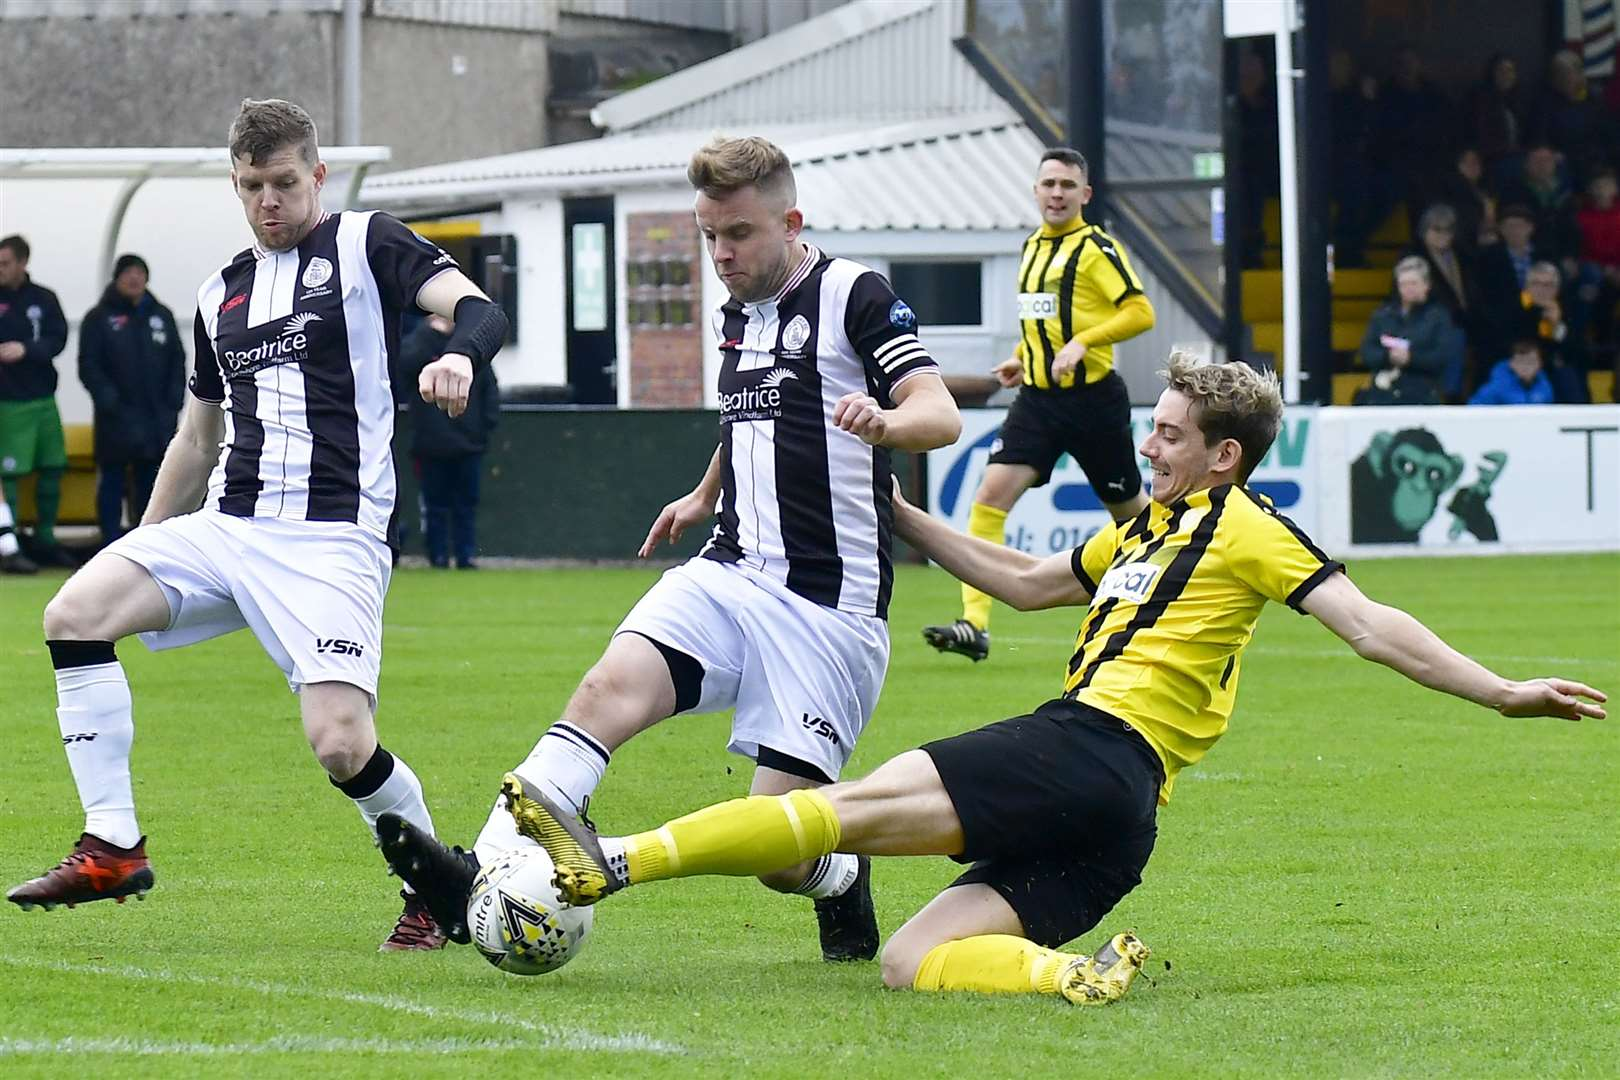 Alan Farquhar challenges Nairn County's Liam Shewan during a Highland League match at Station Park last October. Picture: Mel Roger